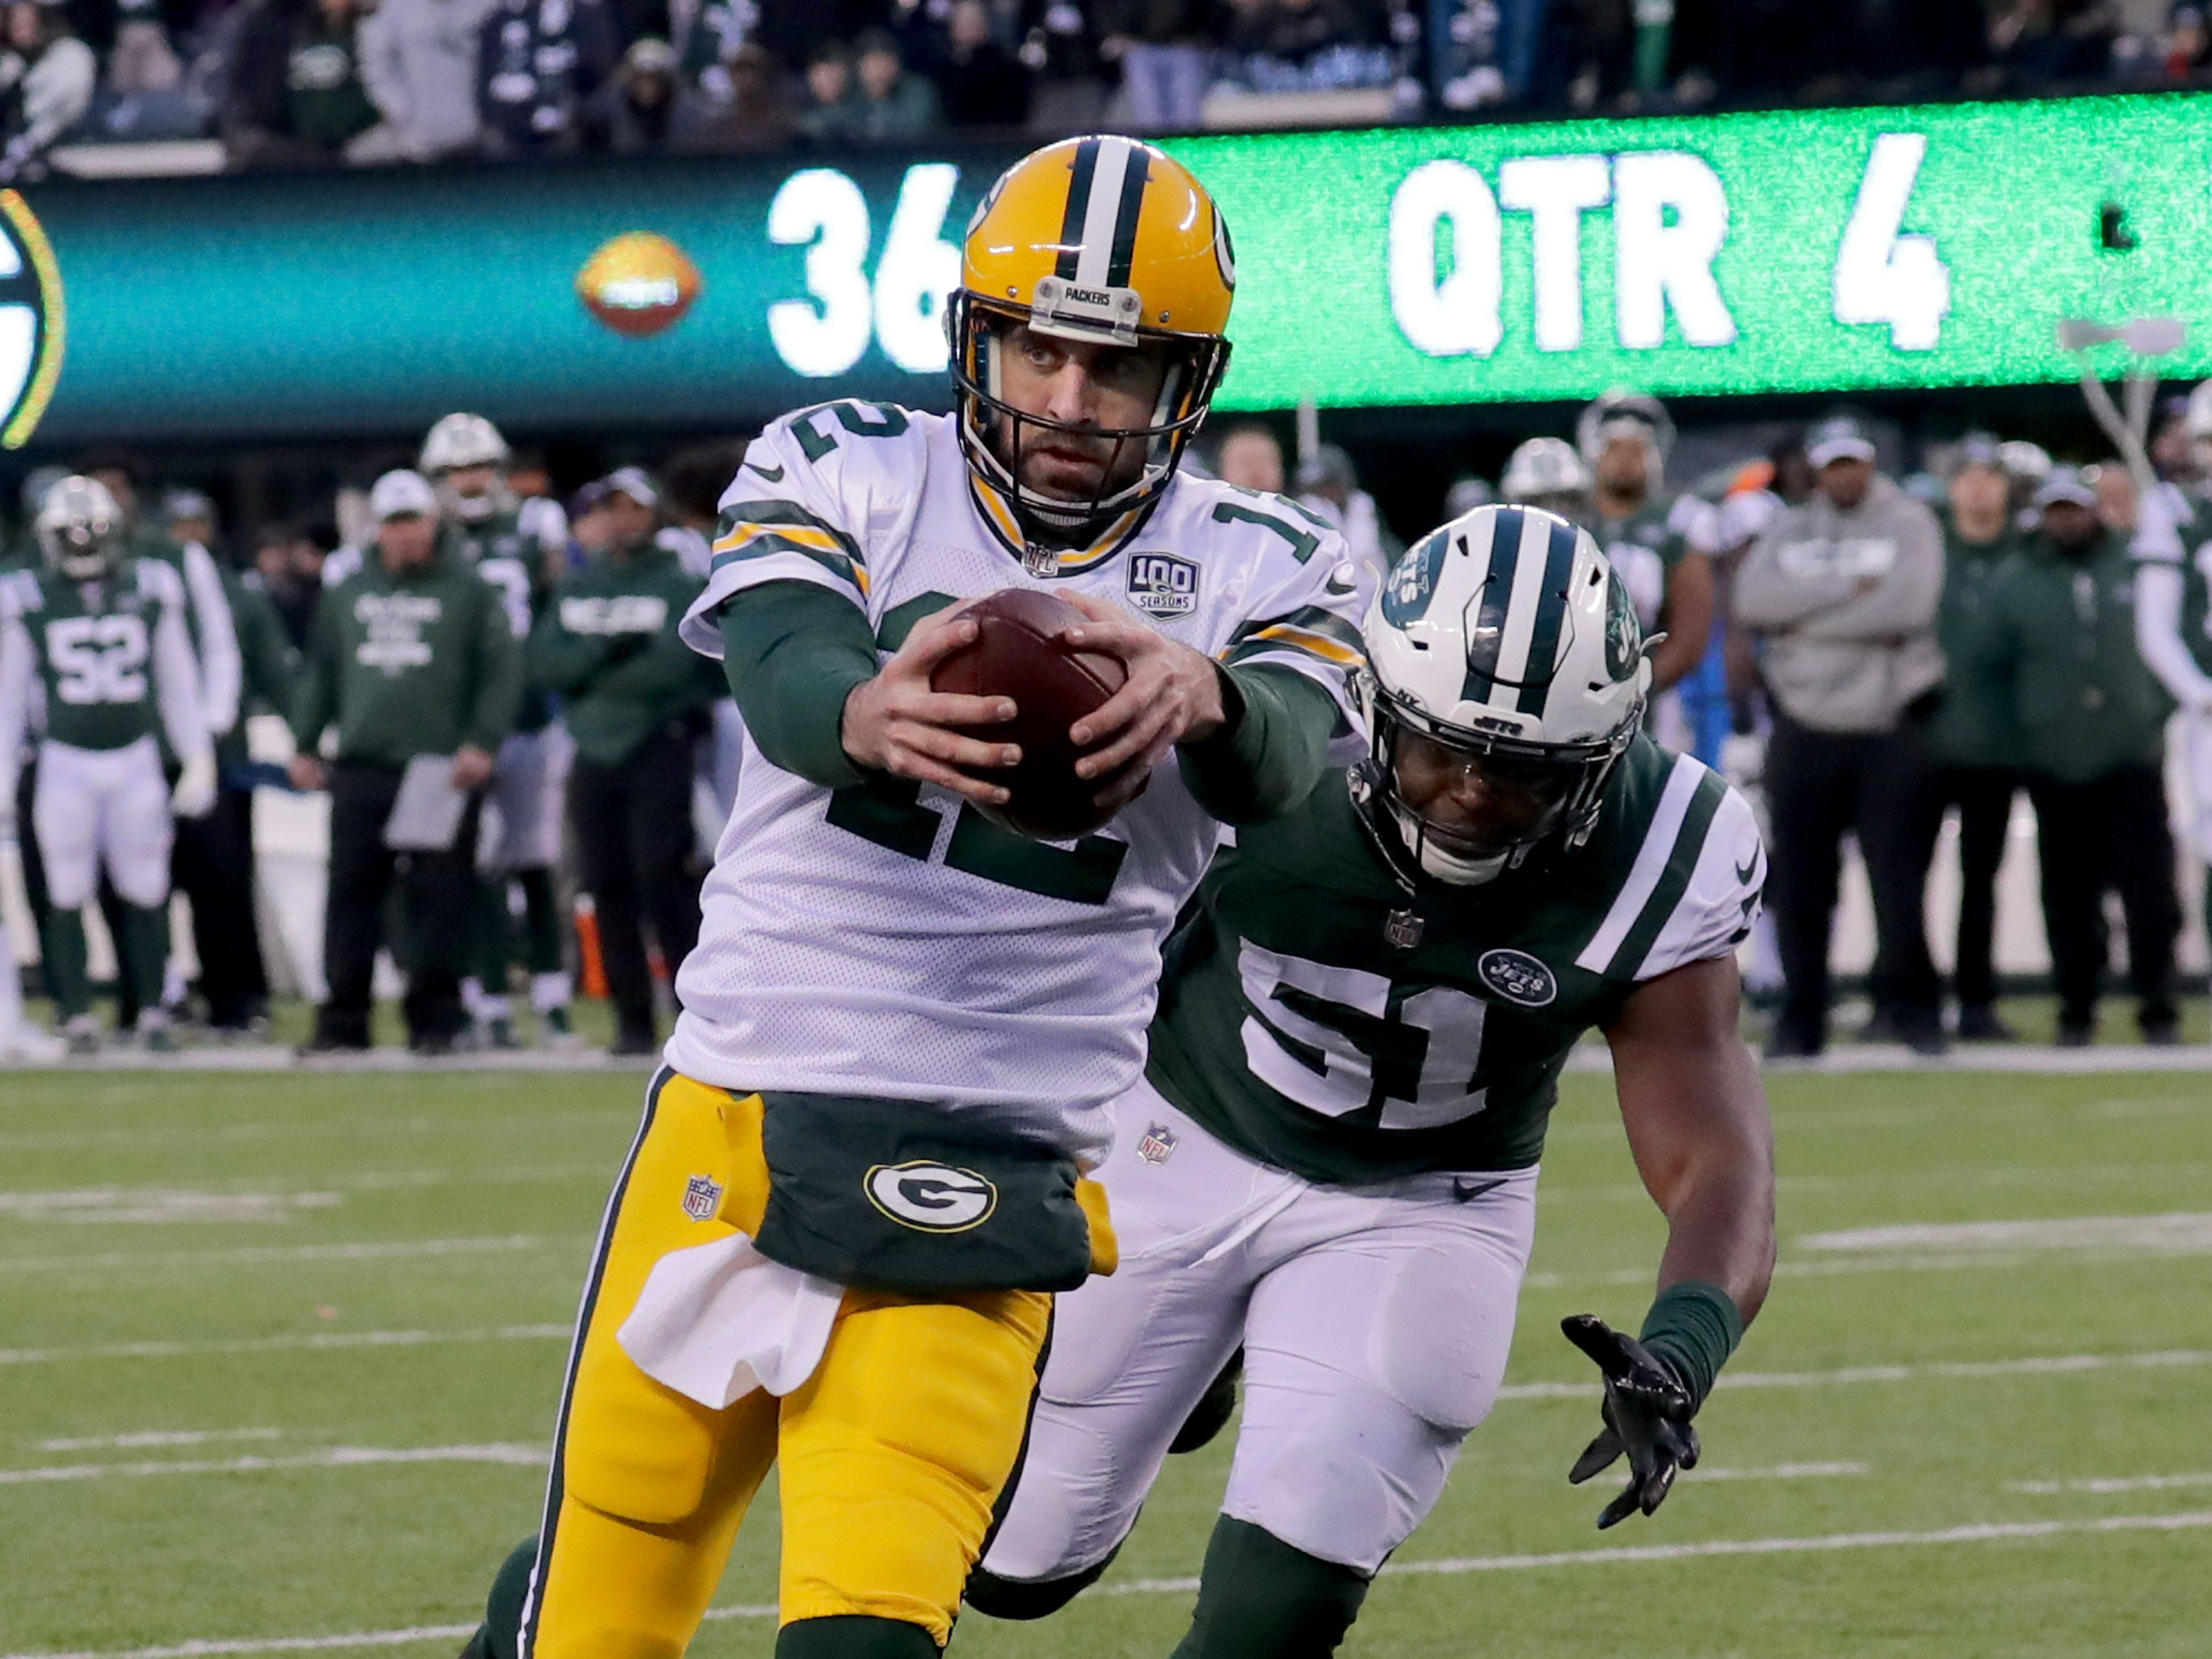 Green Bay Packers' Aaron Rodgers scores a two point conversion  during the 2nd half of Packers 44-38 overtime win against the New York Jets at MetLife Stadium Sunday, Dec. 23, 2018, in East Rutherford.